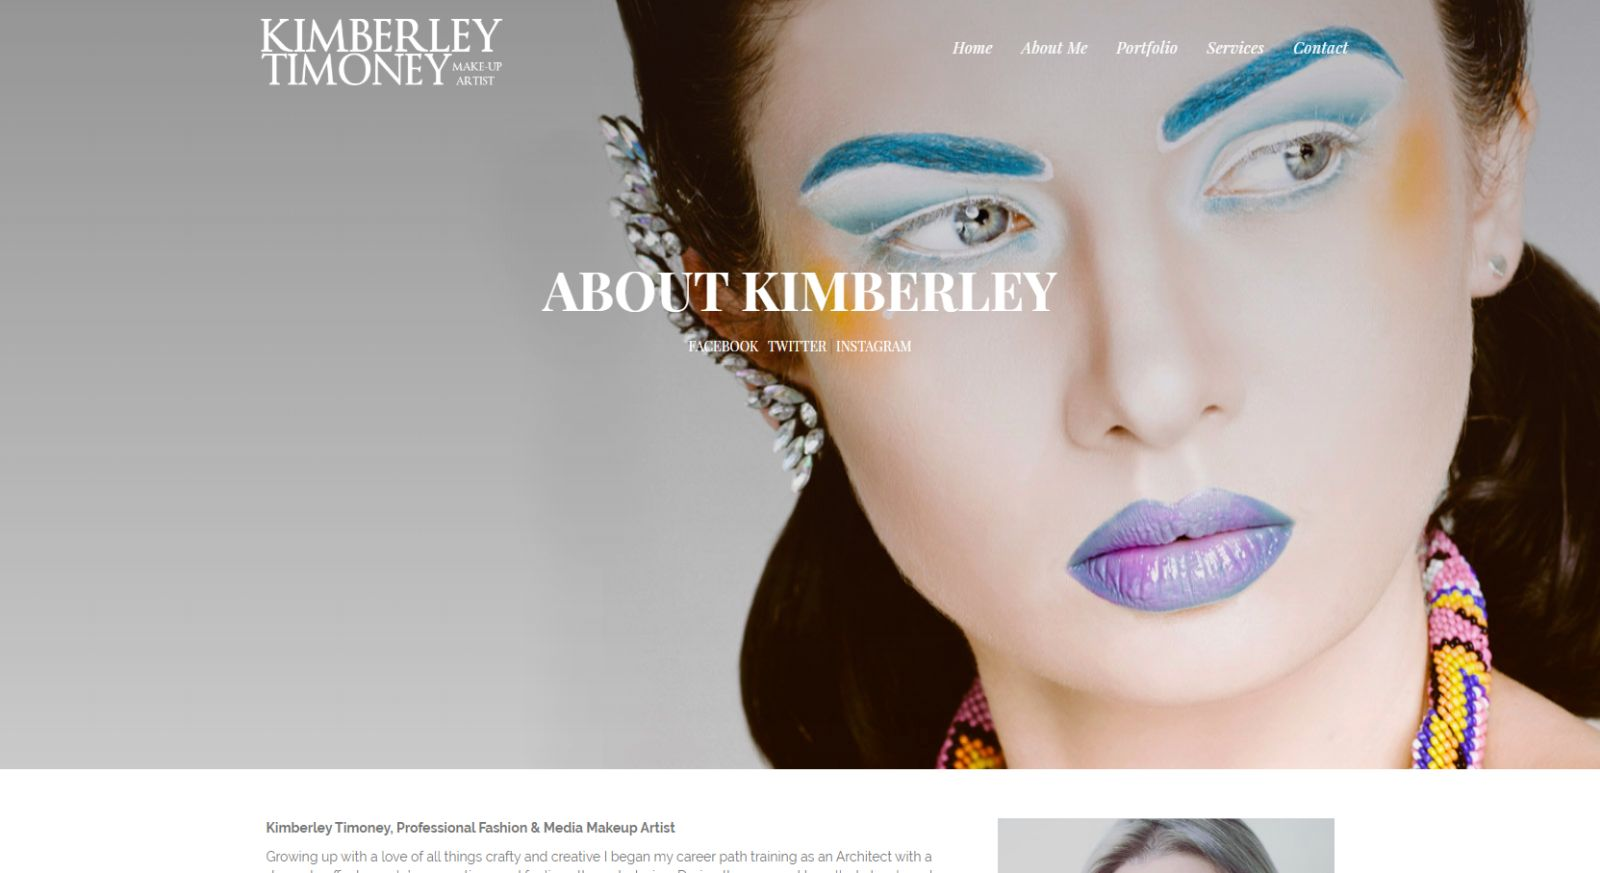 Kimberly Timoney Website Development About